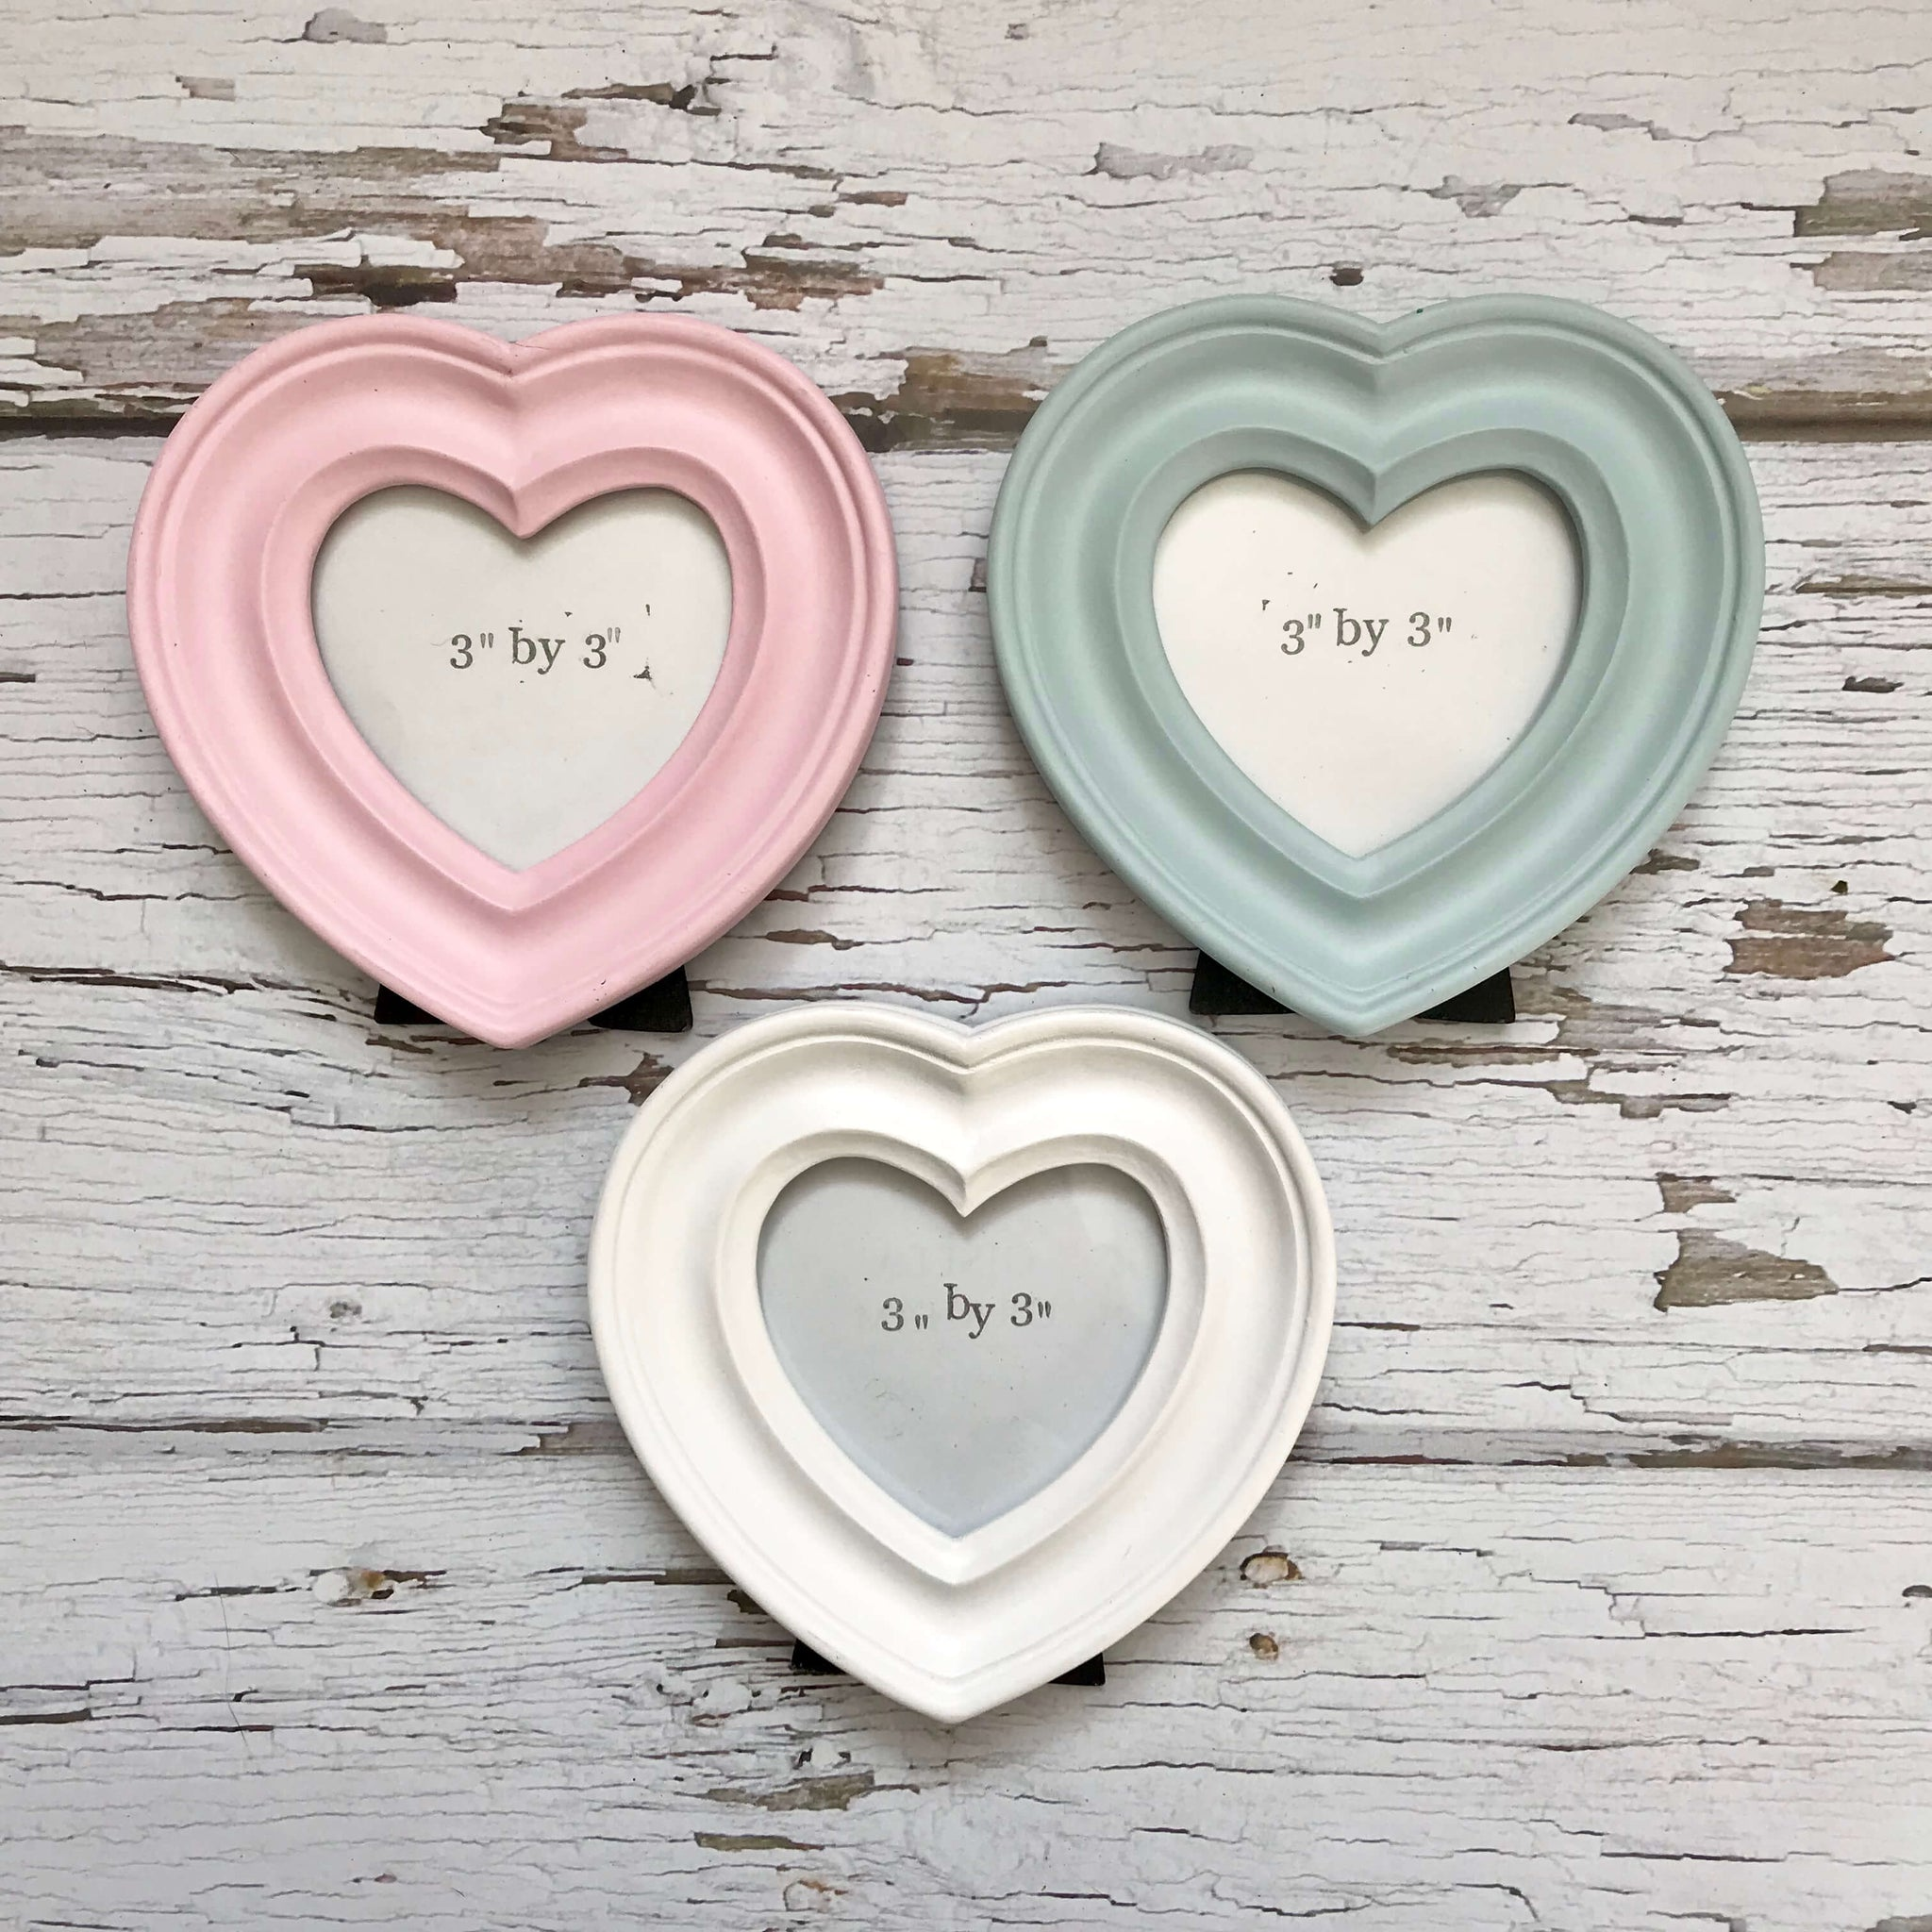 Pastel heart photo frames - Dales Country Interiors